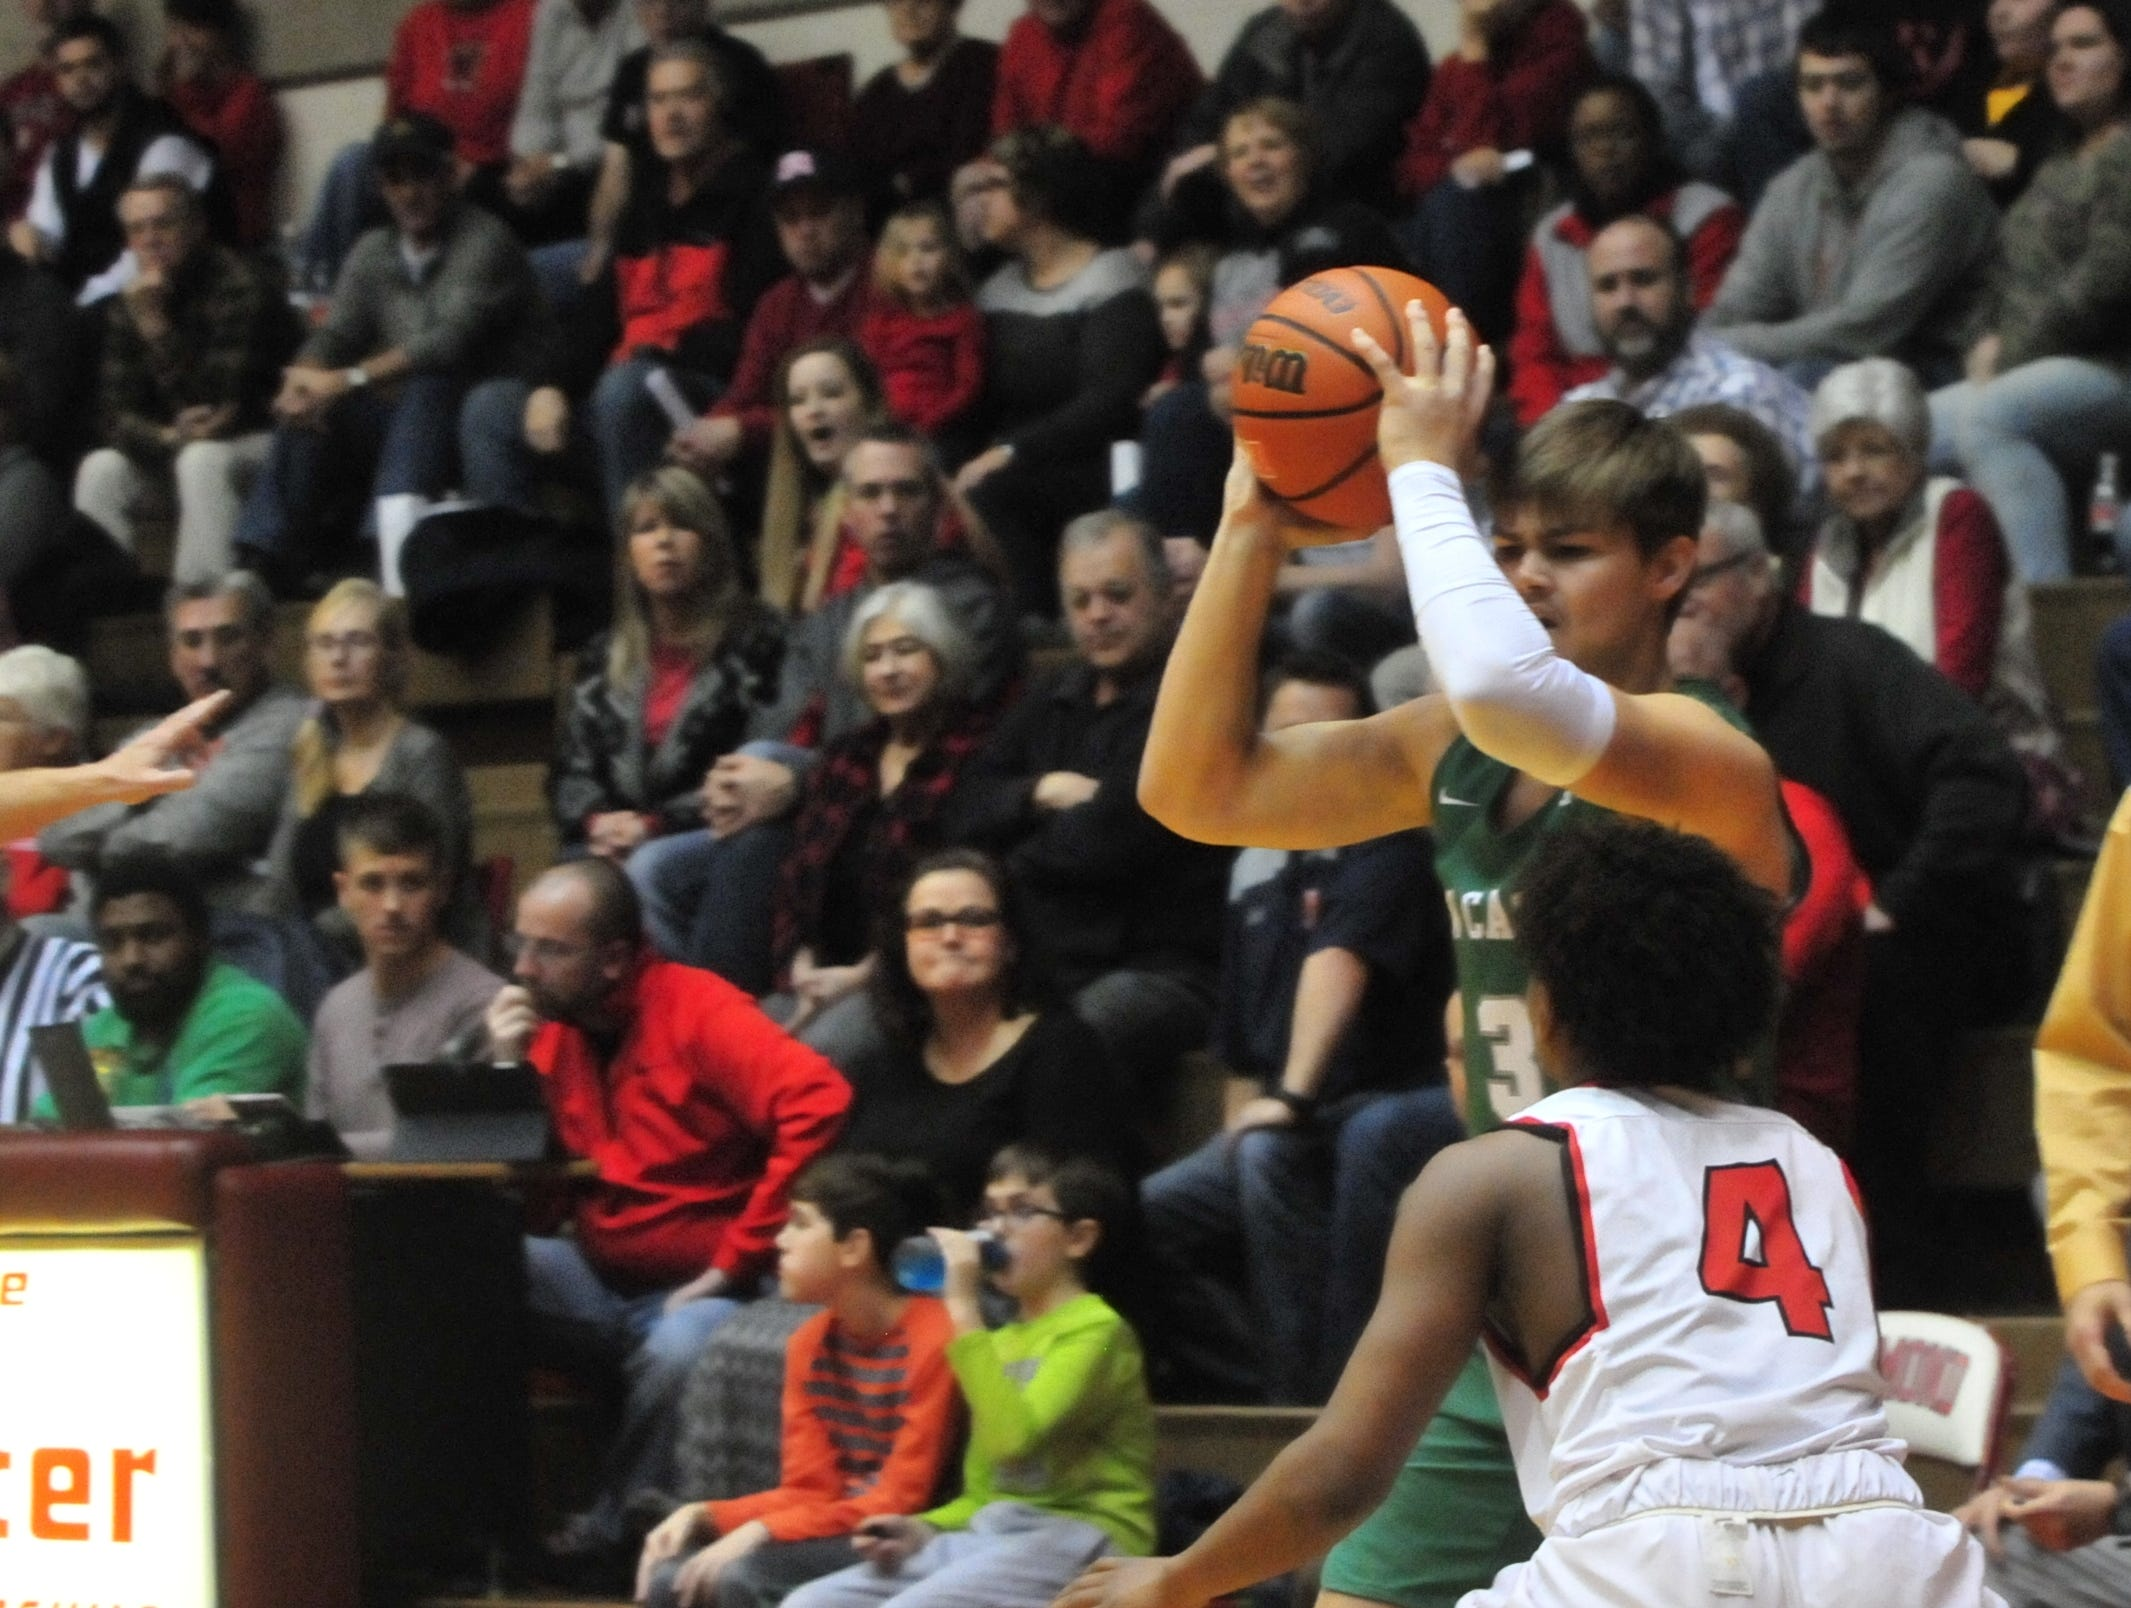 New Castle senior Luke Bumbalough (3) moves the ball against Richmond junior Koream Jett (4) during a boys basketball game at Tiernan Center Friday, Jan. 4, 2019.